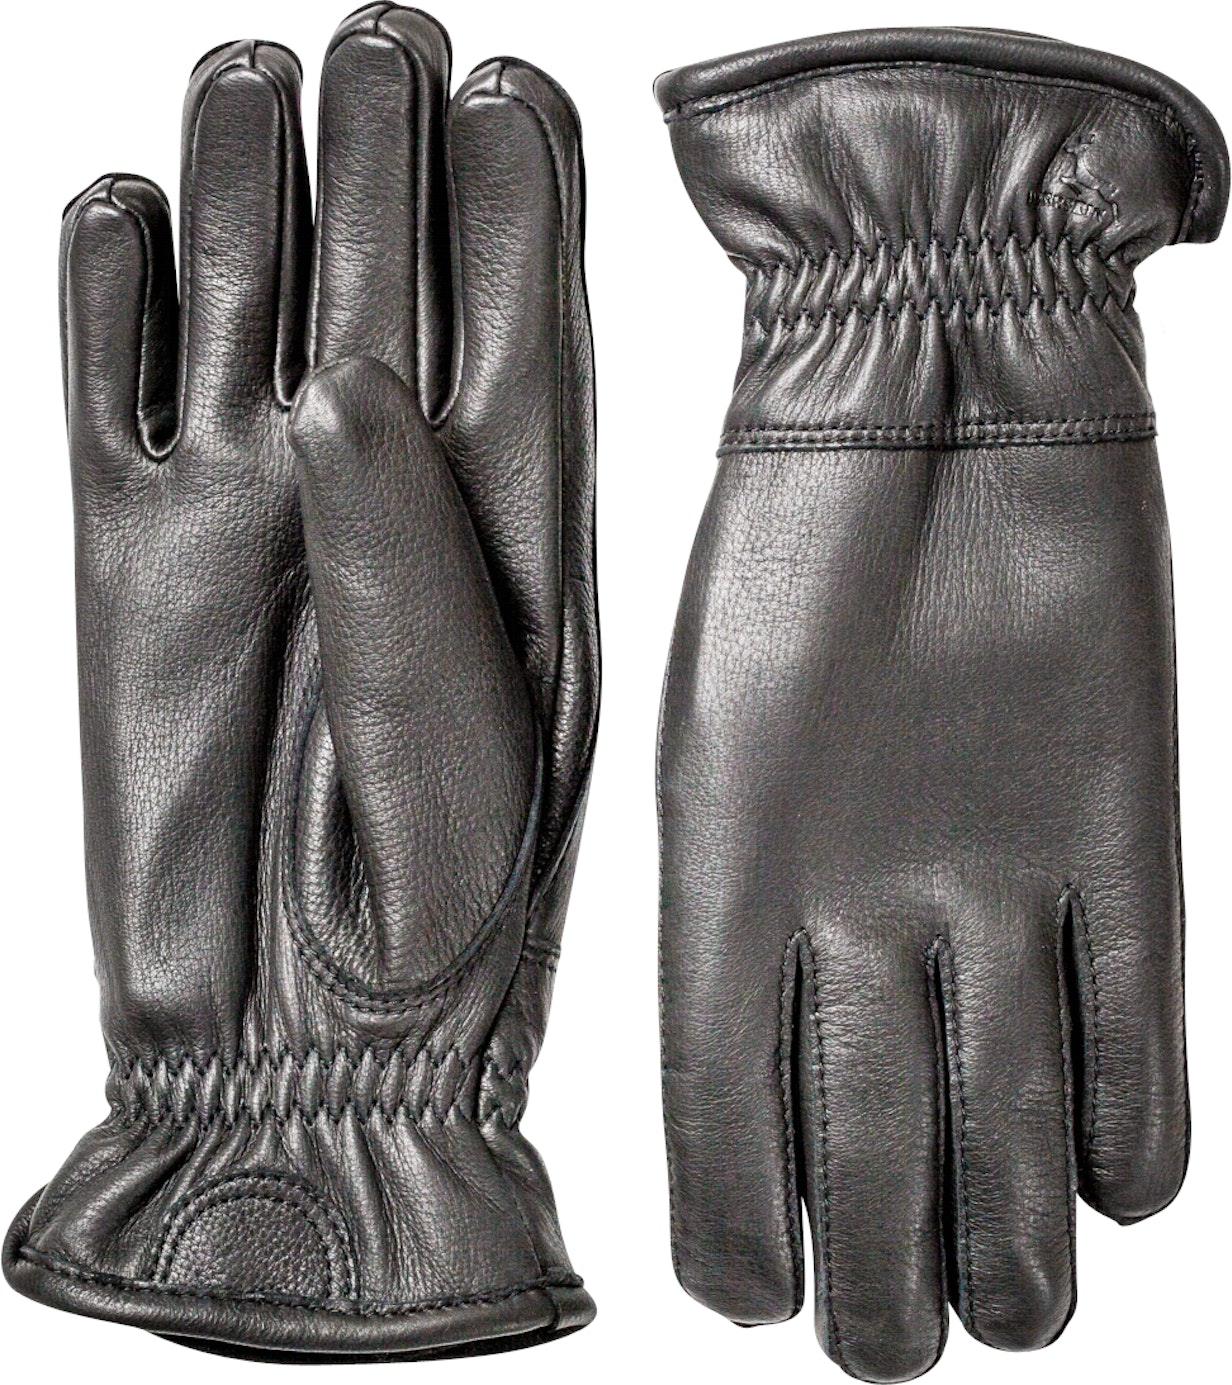 Product image for 20280 Deerskin Winter